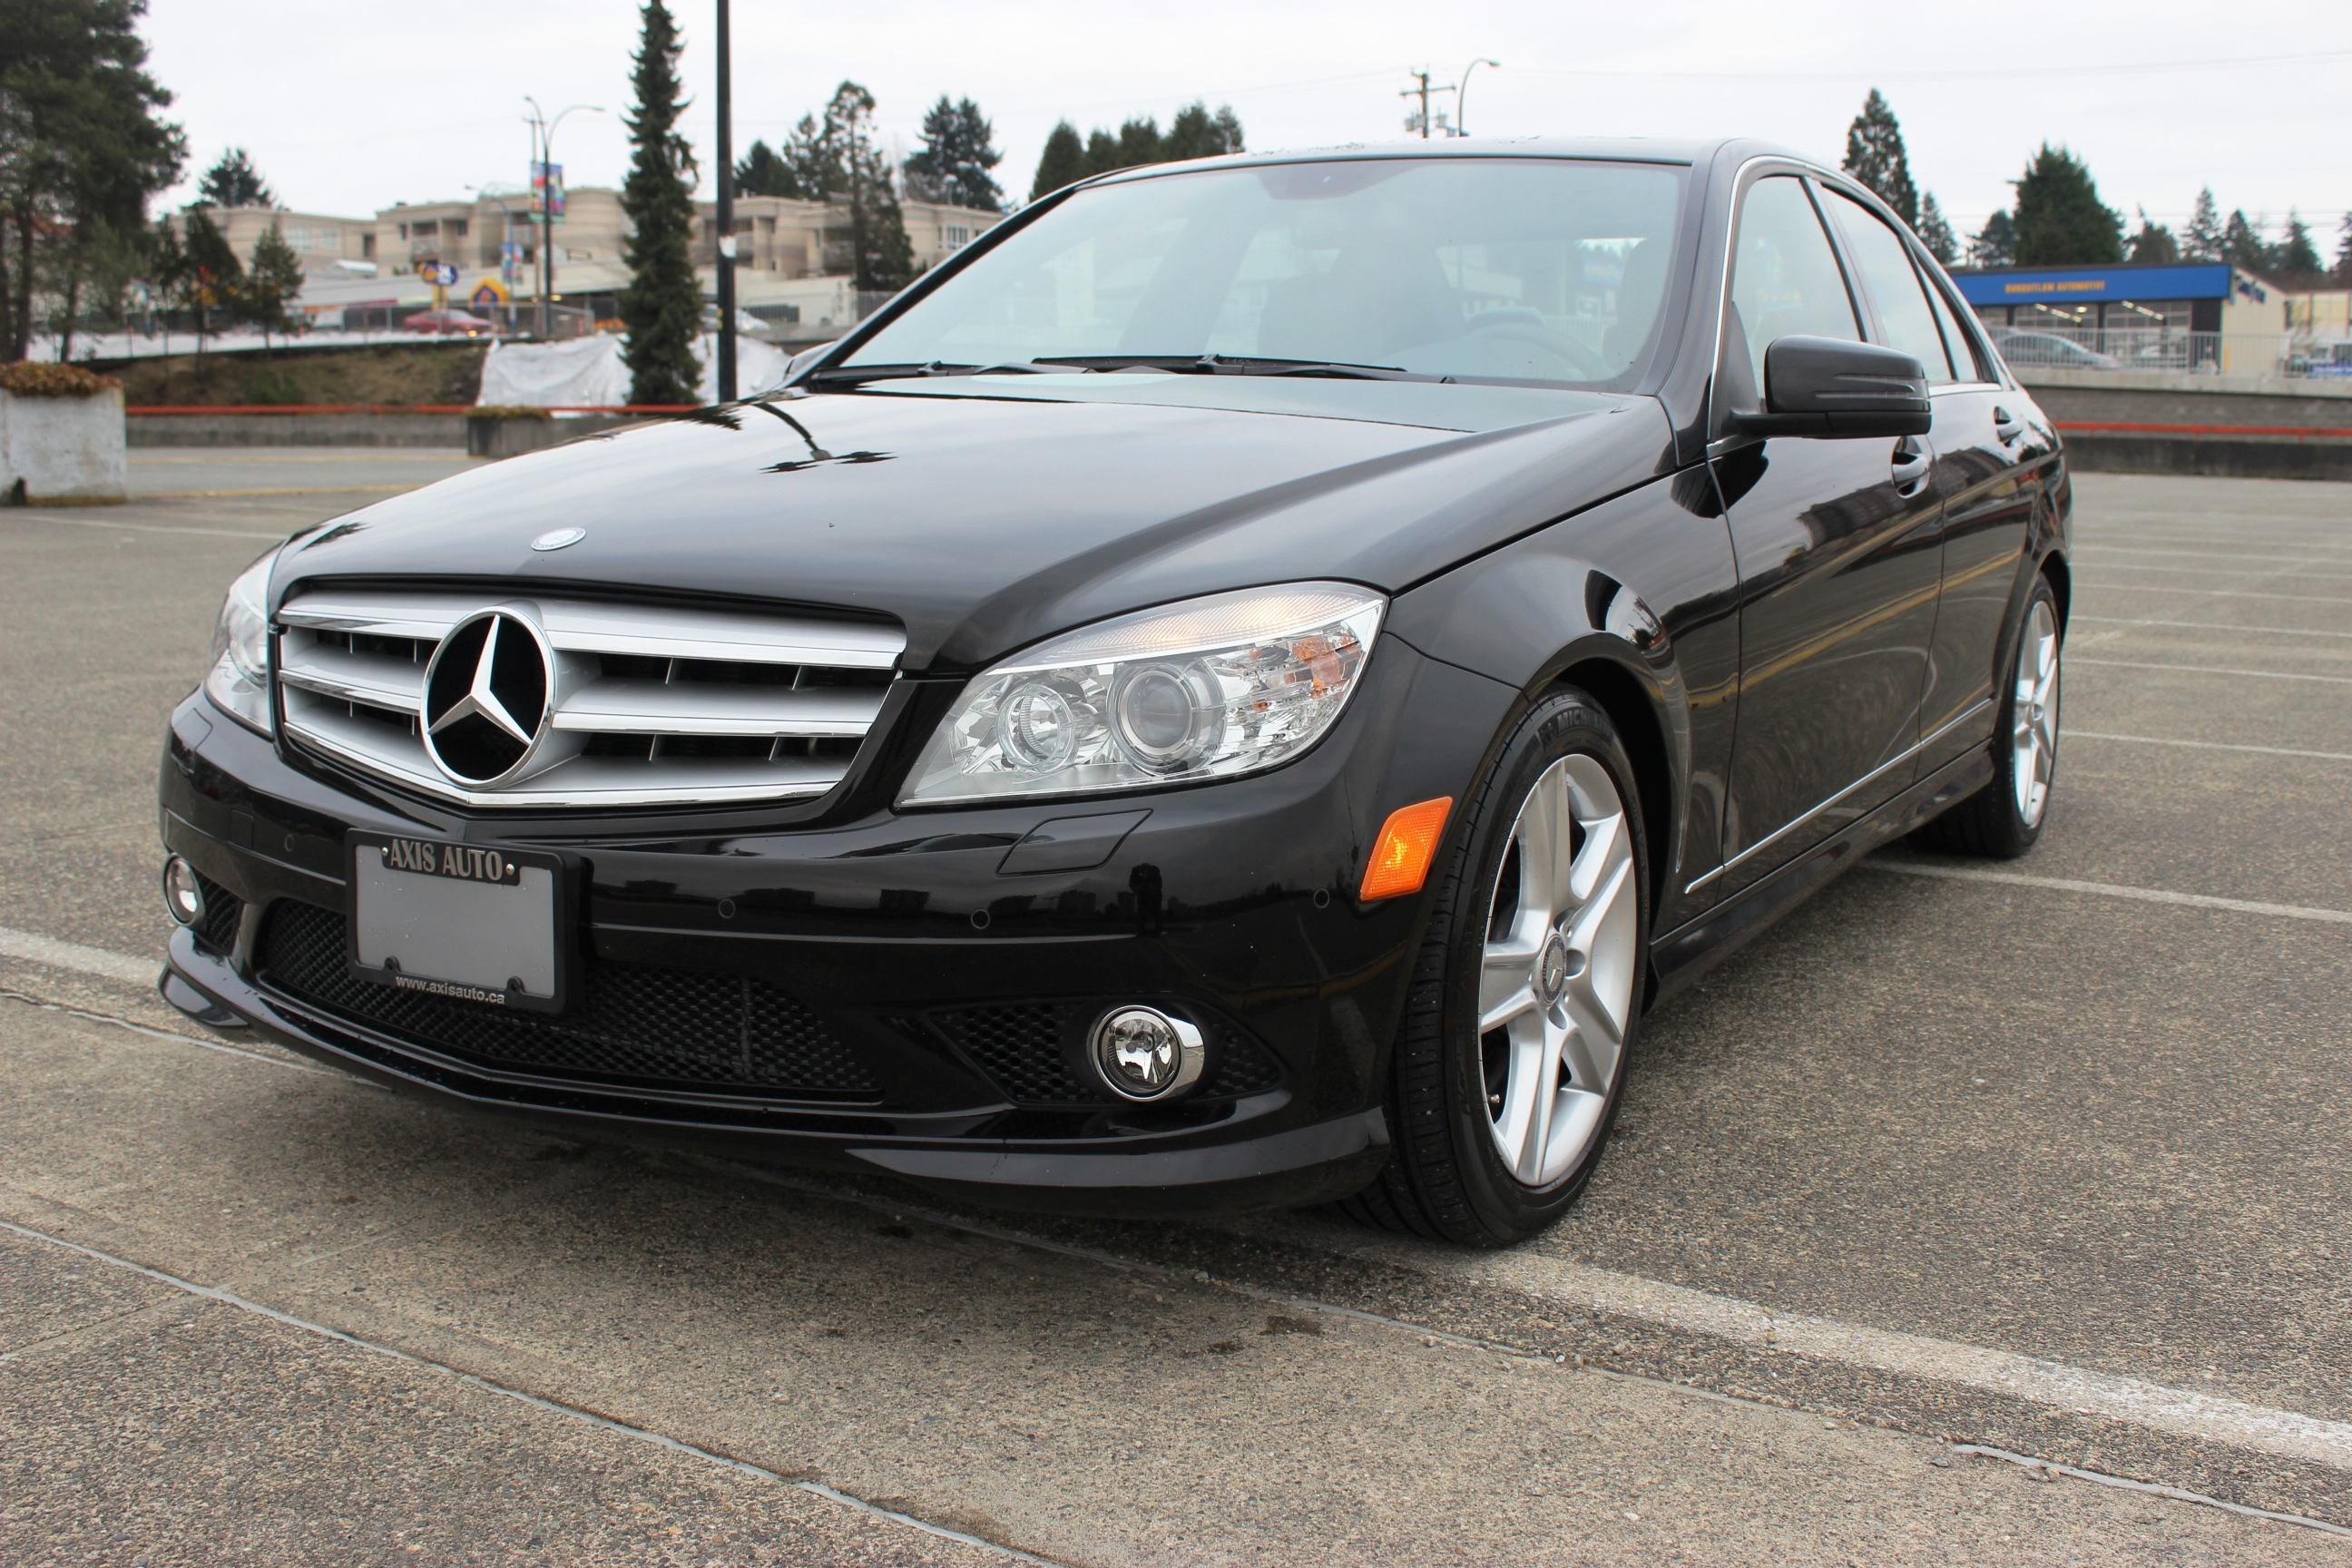 2010 mercedes benz c300 4matic axis auto